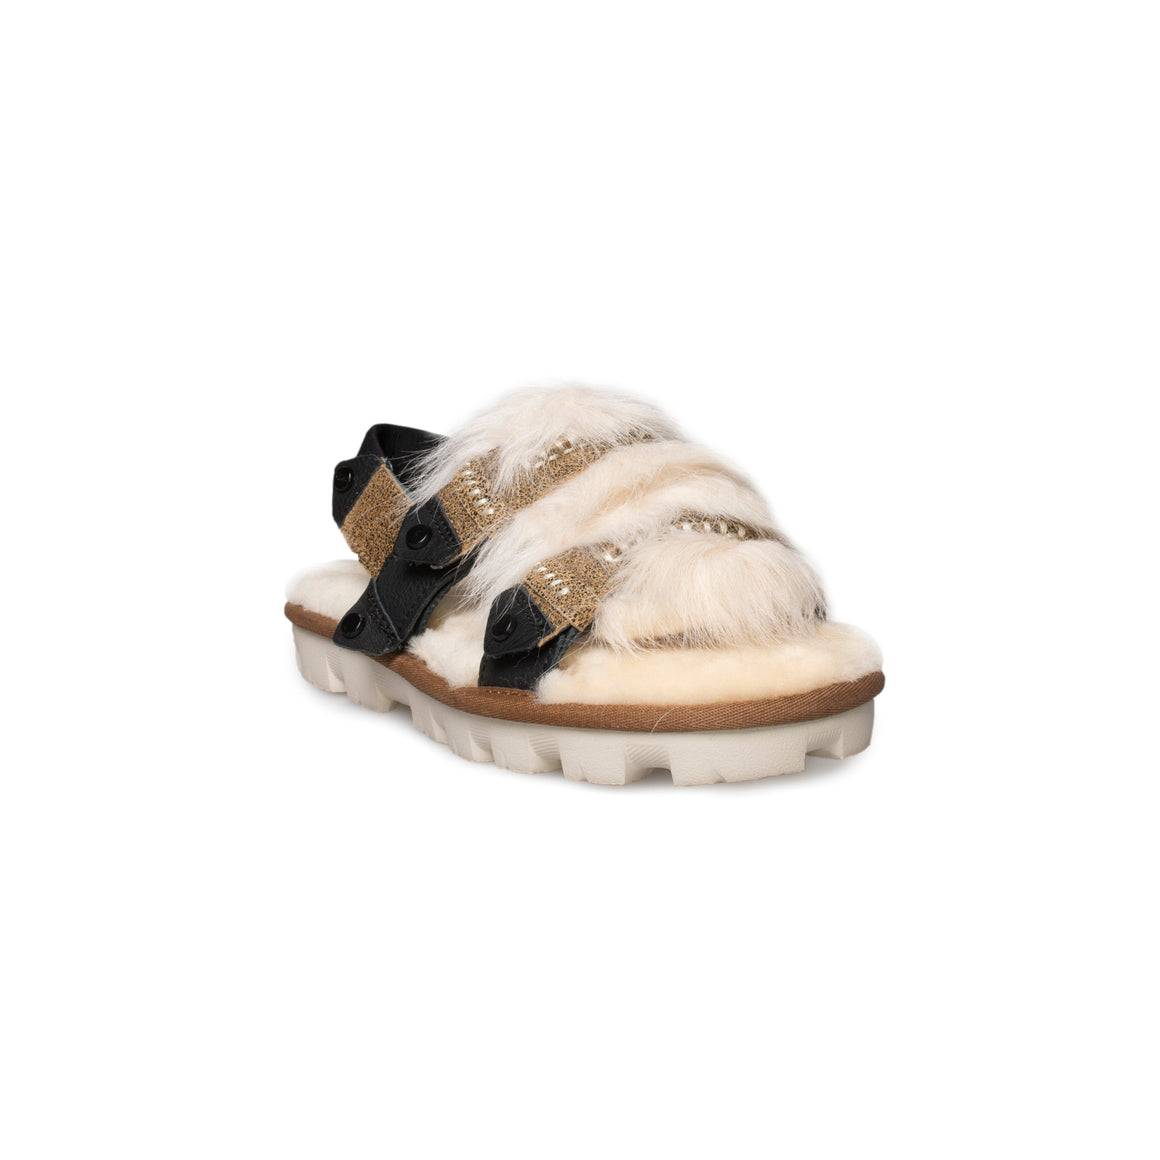 UGG Fluff Punk Slingback Chestnut Sandals - Women's